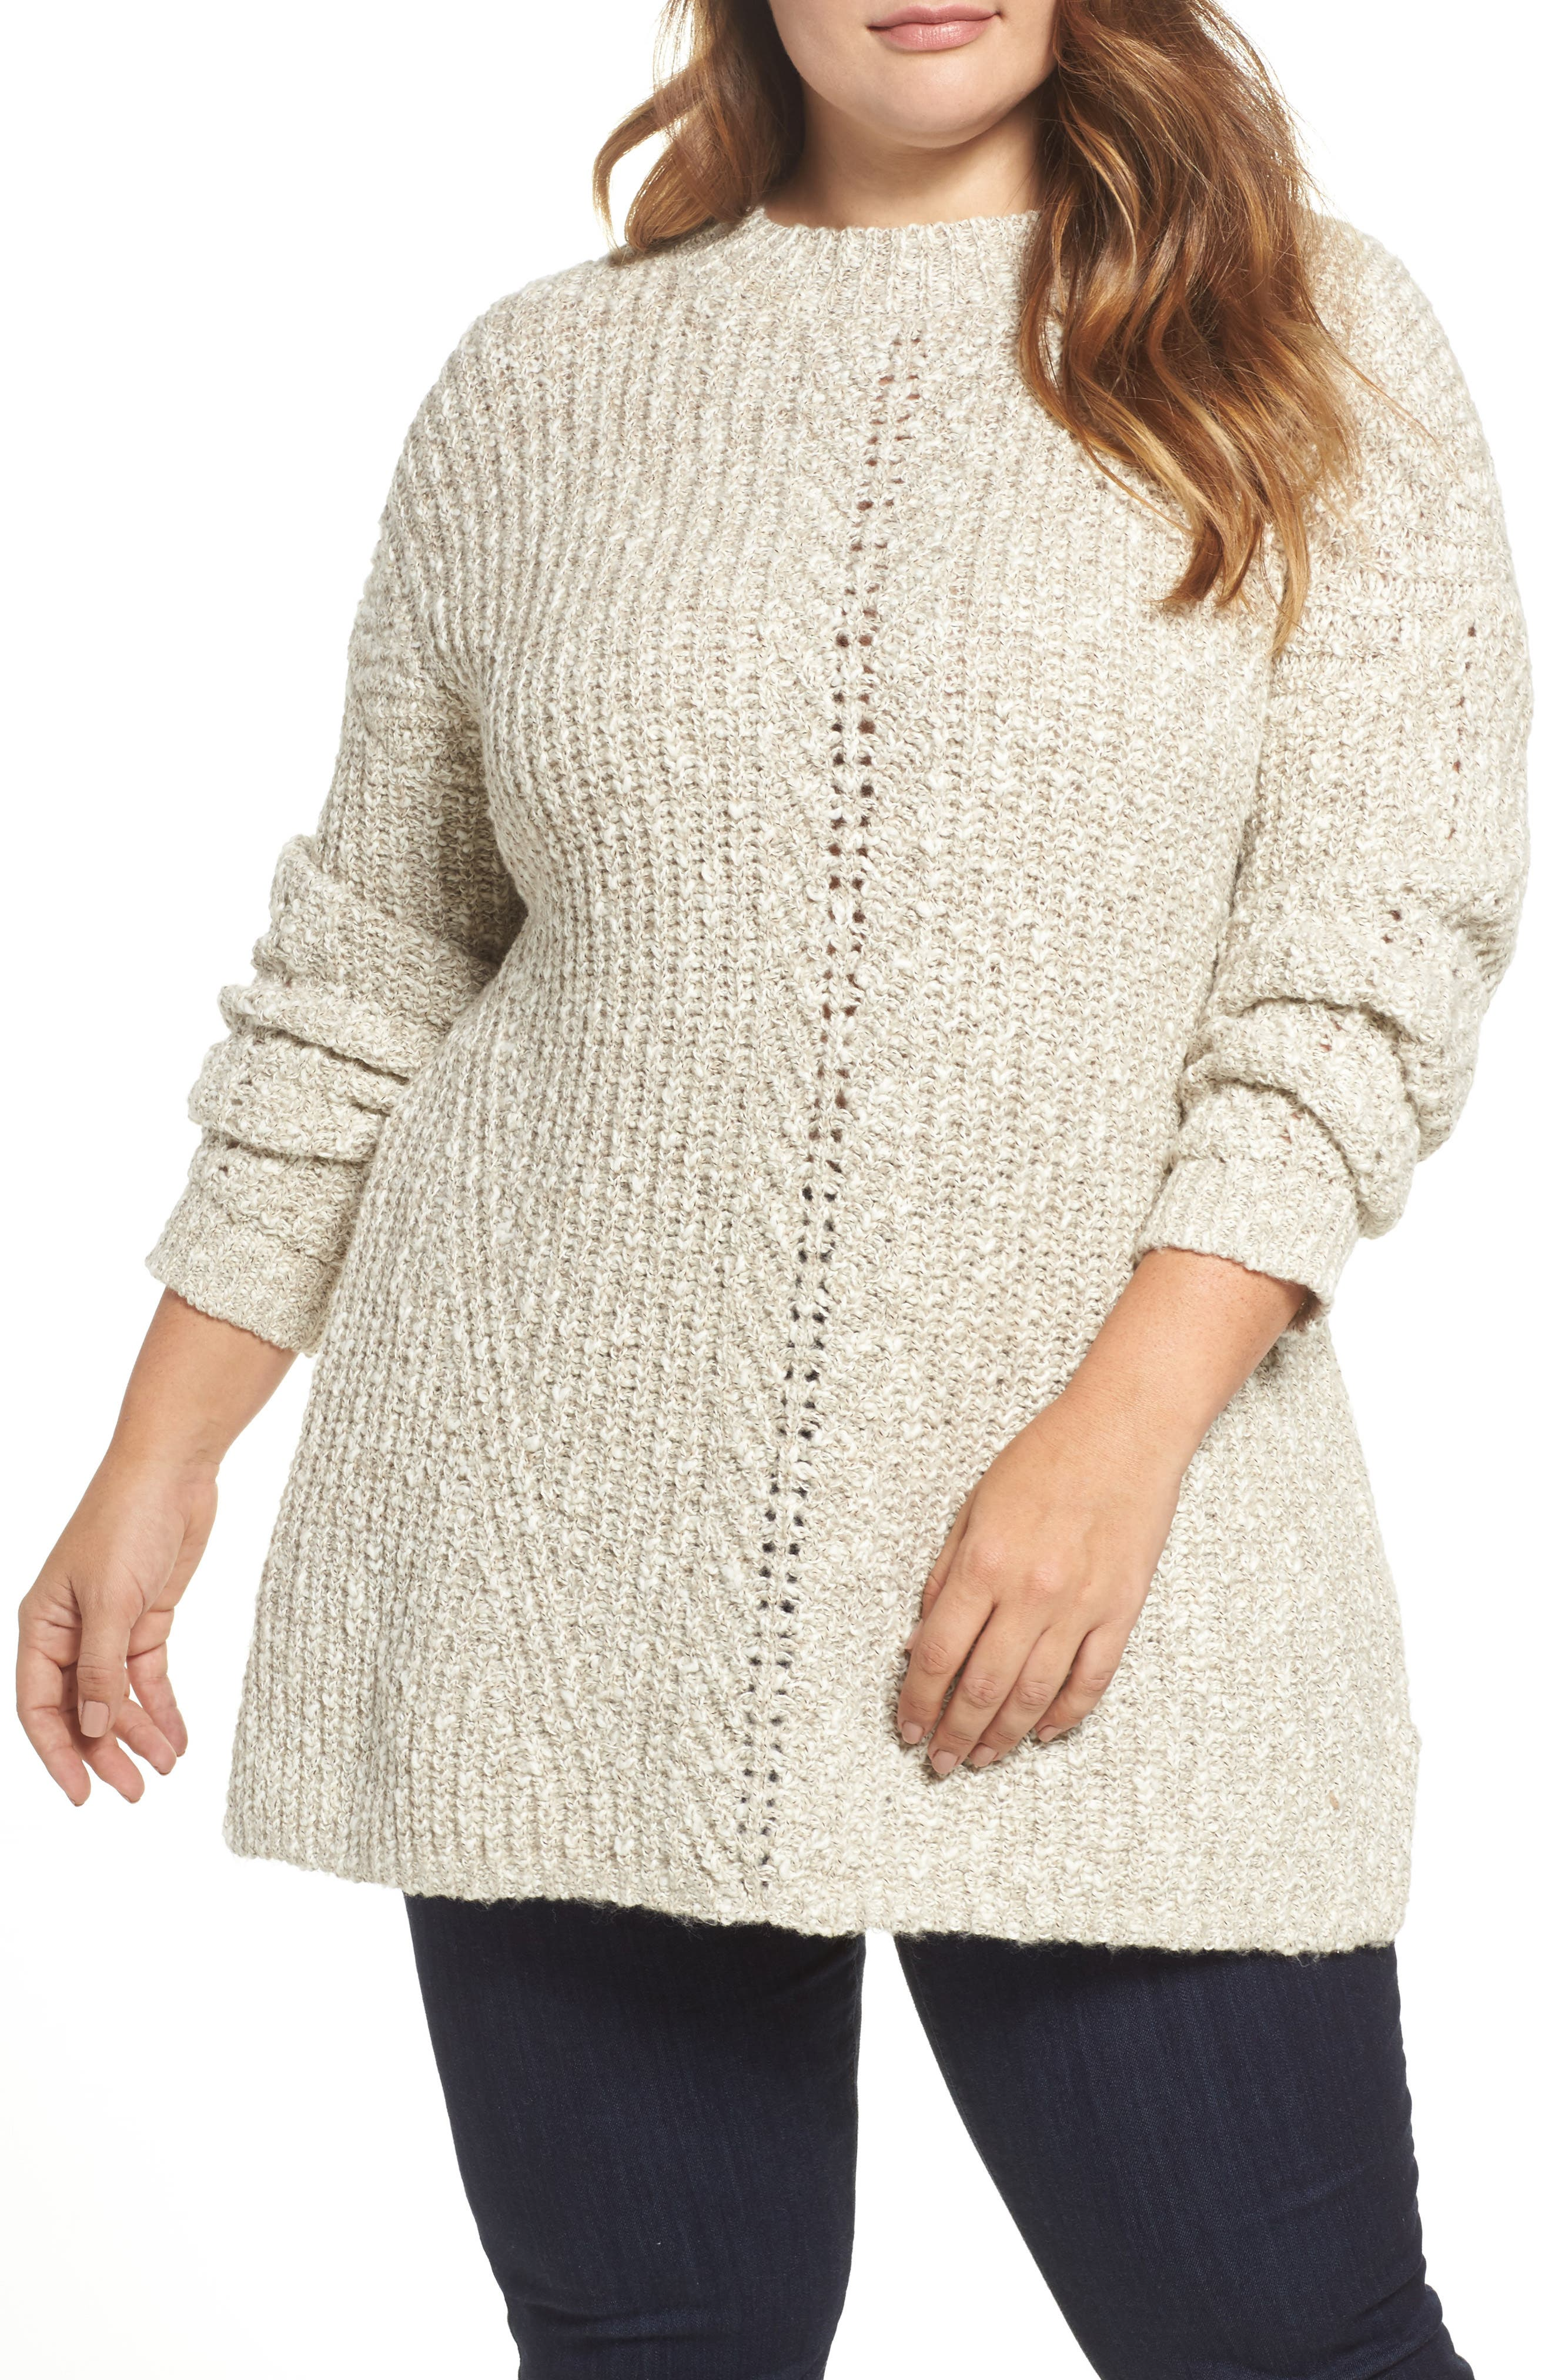 Open Stitch Sweater,                             Main thumbnail 1, color,                             Natural Multi